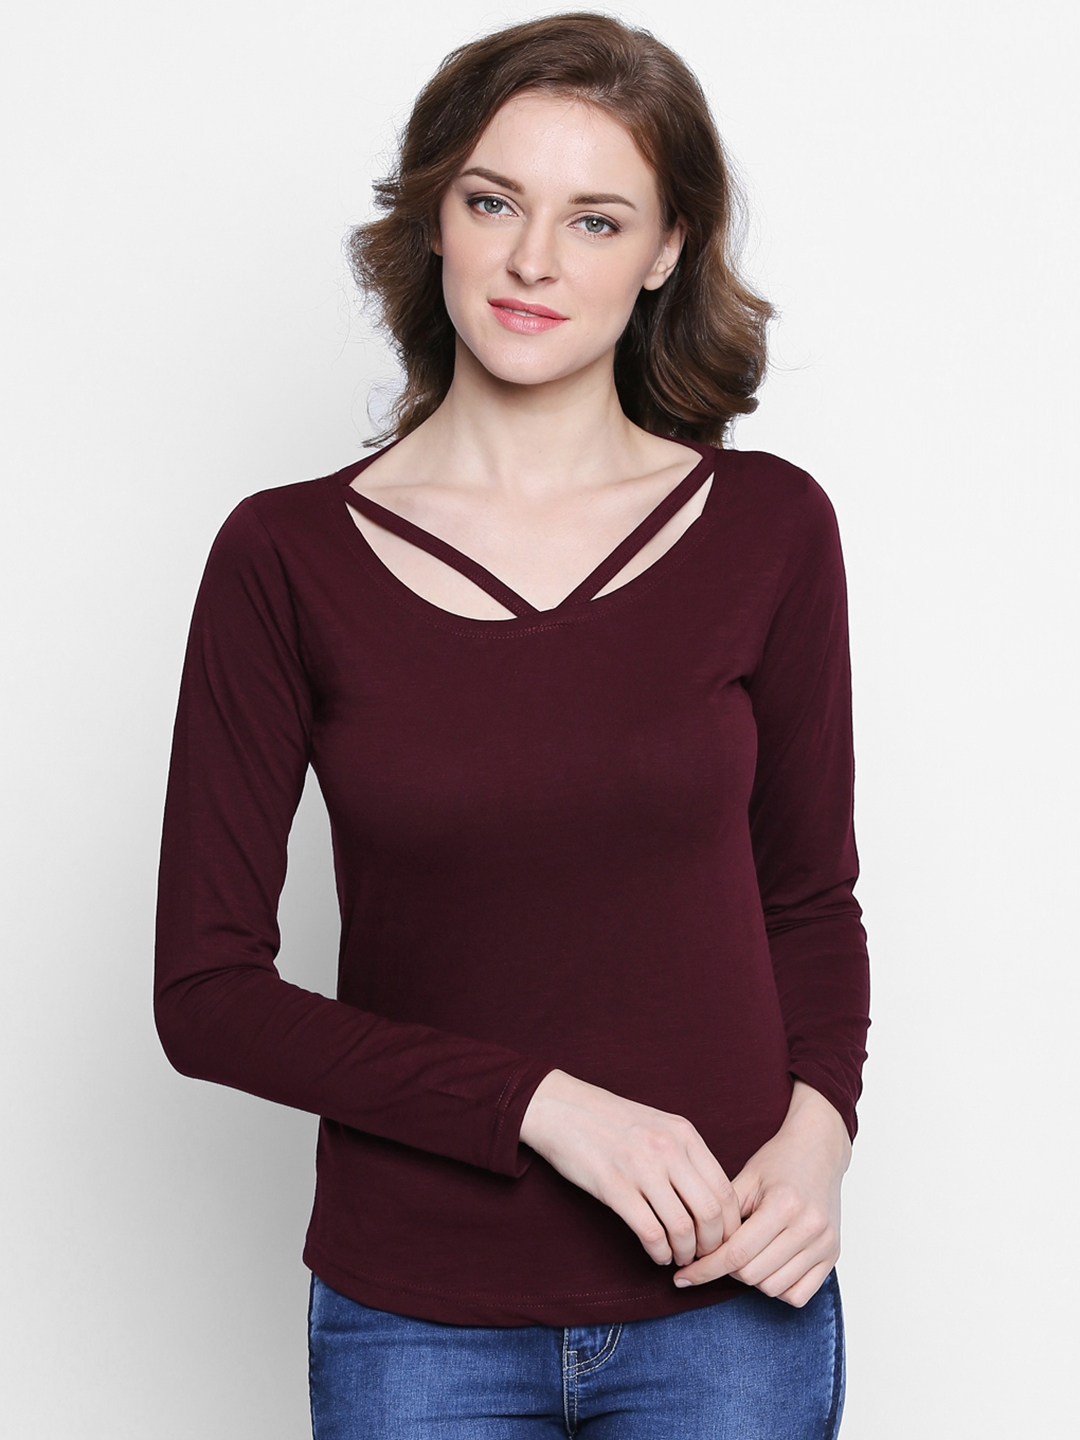 The Dry State Women Burgundy Solid Scoop Neck T shirt